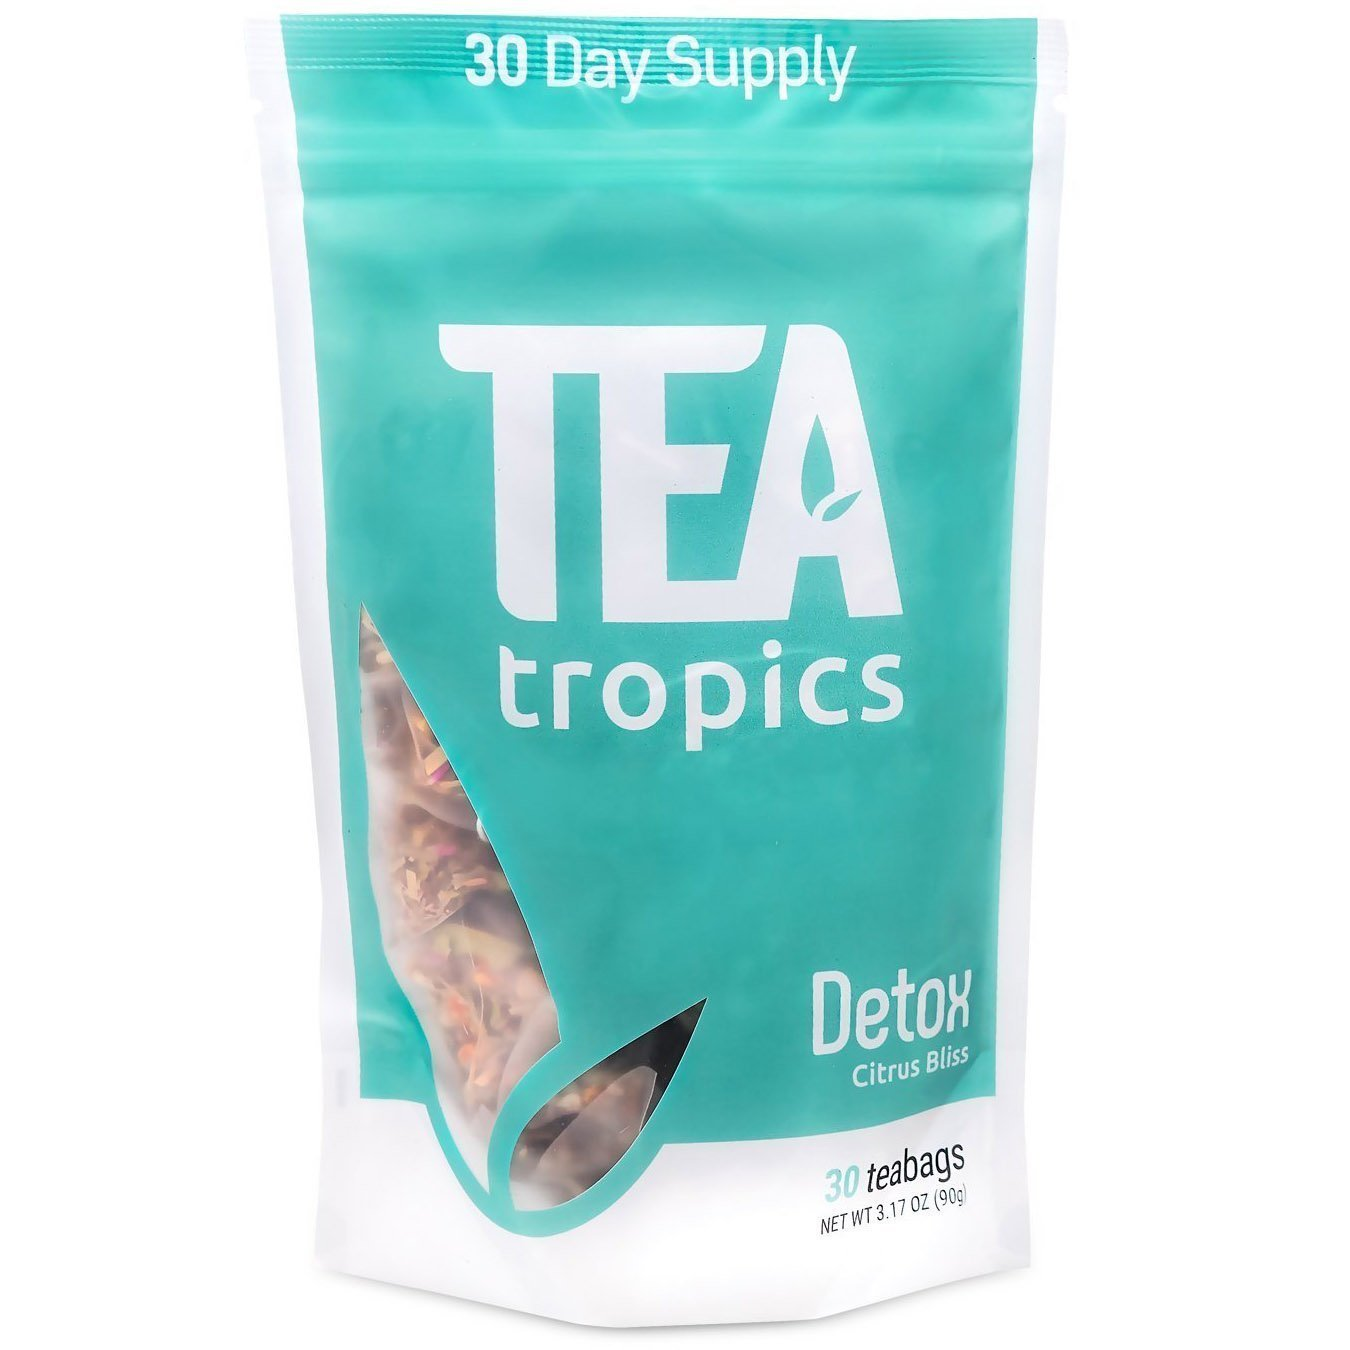 Tea Tropics Full Body Detox Tea 30 Day Cleanse – Reduce Bloating, Appetite Suppressant, Natural, Powerful Weight Loss, Pyramid Tea Bags with Great Citrus Taste Caffeine Free Brew Hot or Iced Teatox